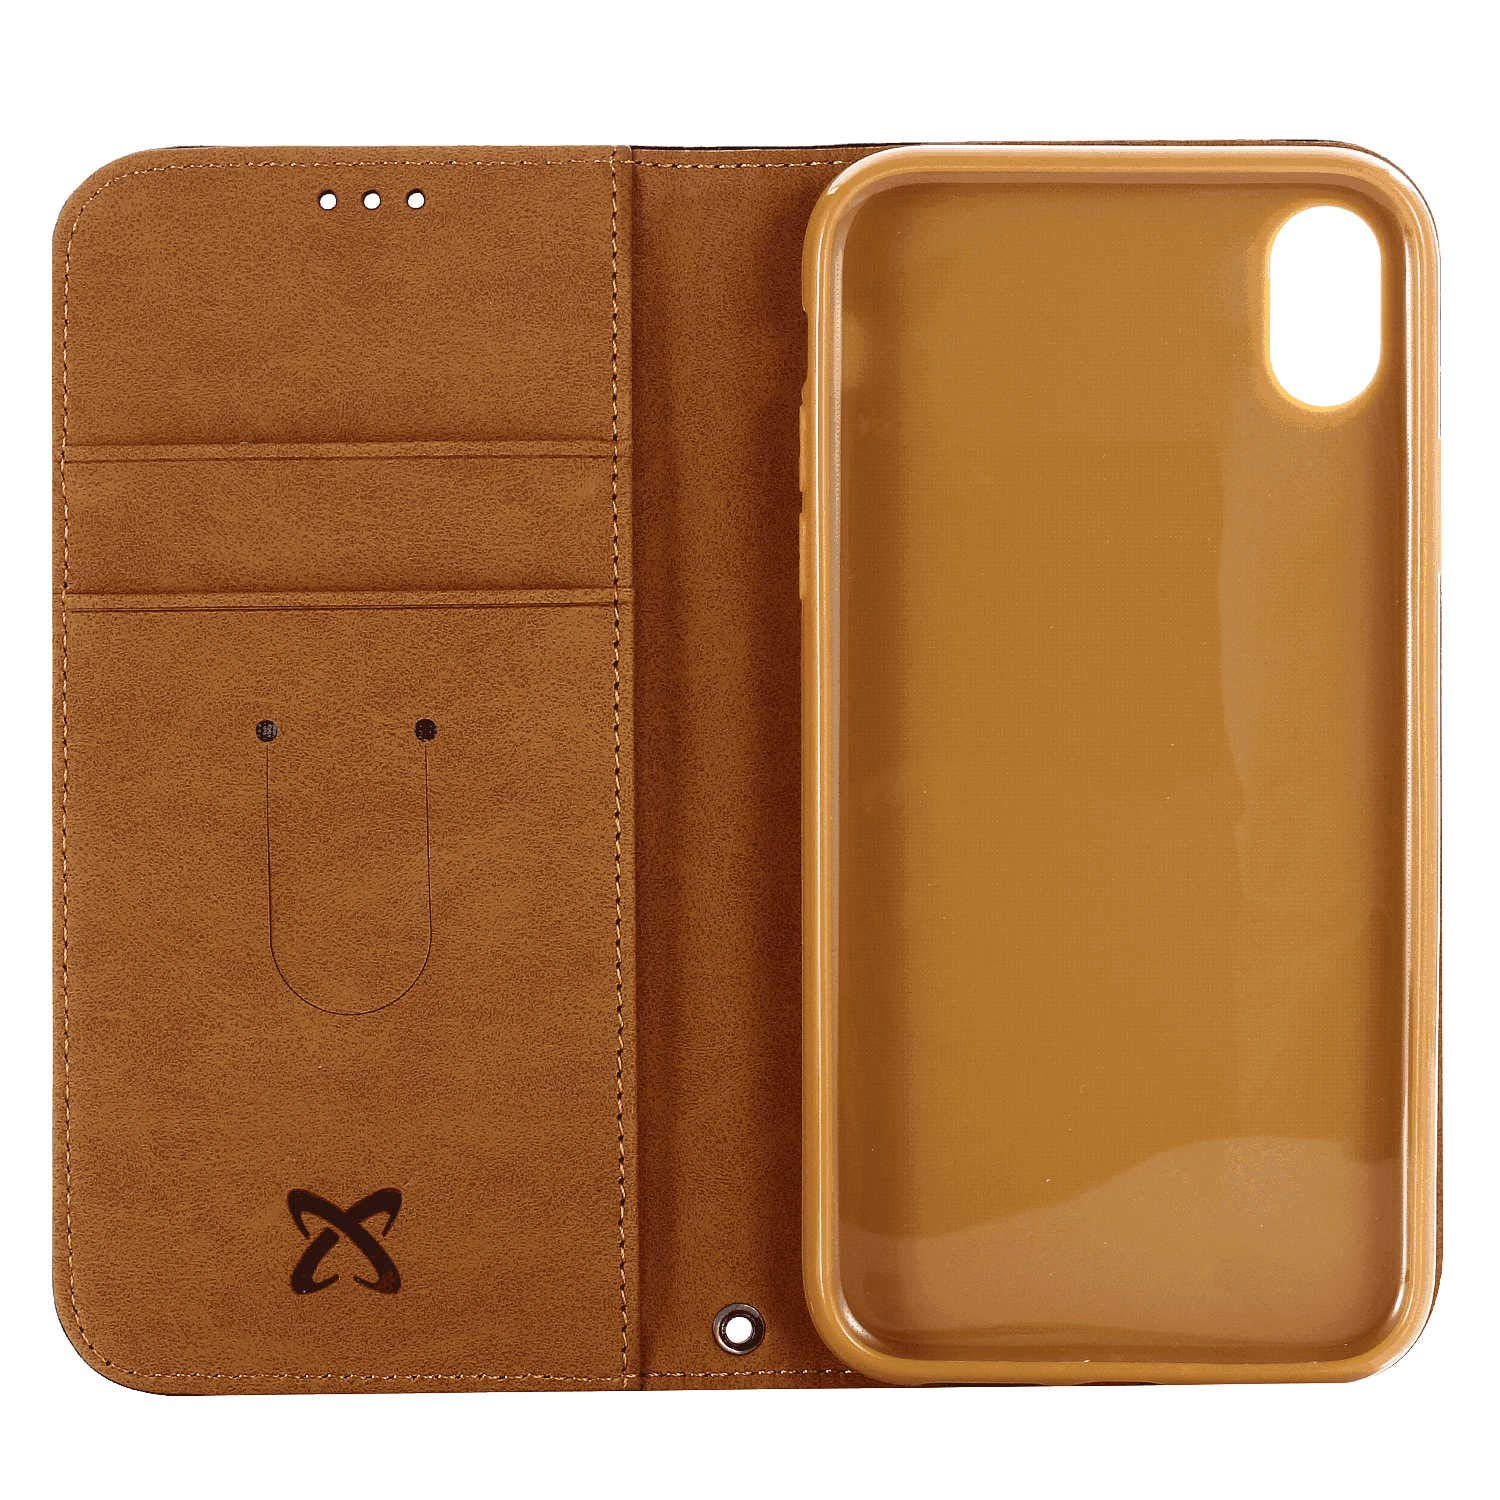 Leather Flip Case for iPhone 11 Pro with Waterproof Pouch for Smart Phone Business Wallet Cover Compatible with iPhone 11 Pro